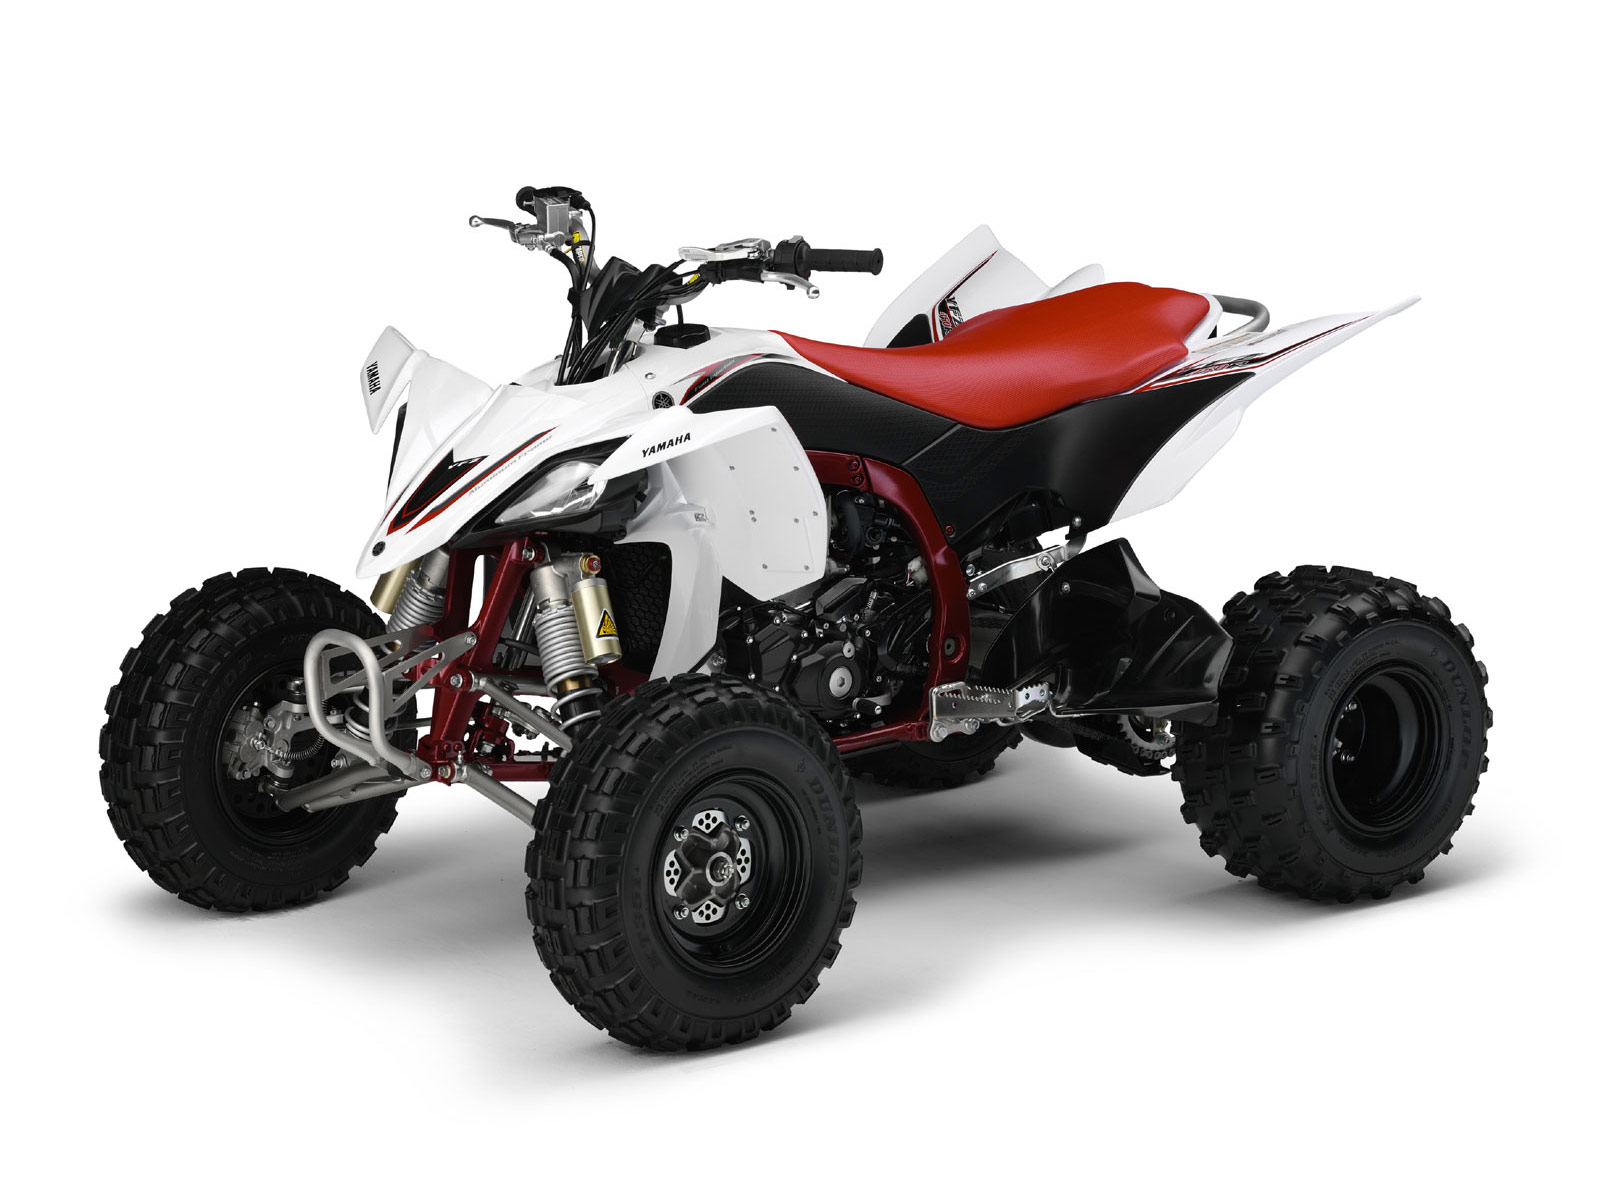 2009 Yamaha Yfz450r Atv Pictures Accident Lawyers Info Yfz 450r Wiring Diagram Features And Specifiacations